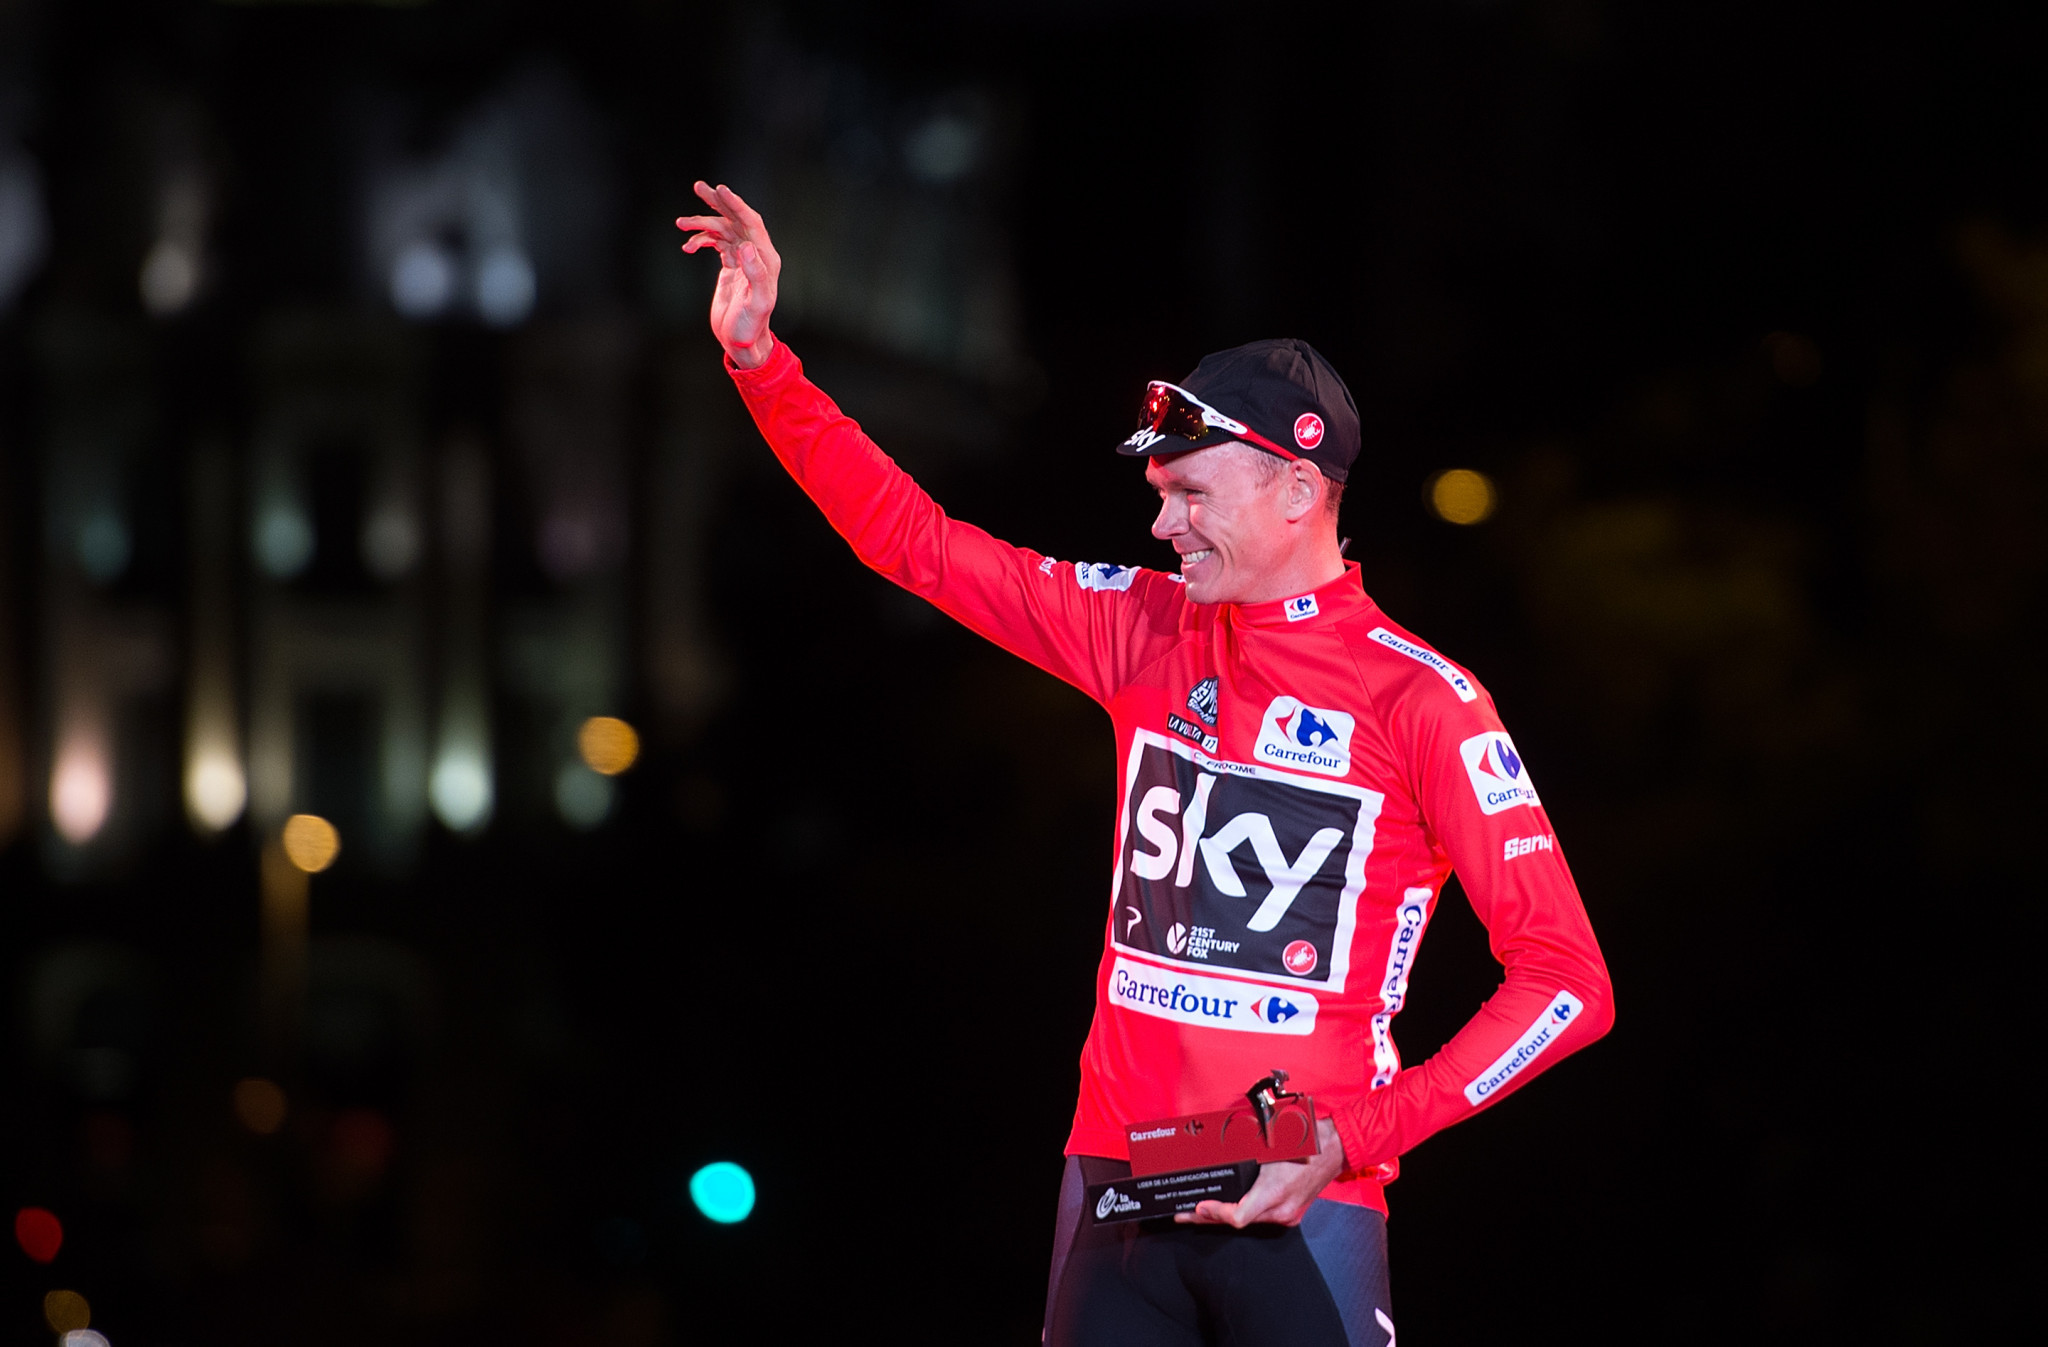 Chris Froome, wearing the Vuelta leader's red jersey, has denied all wrongdoing and has pledged to clear his name ©Getty Images